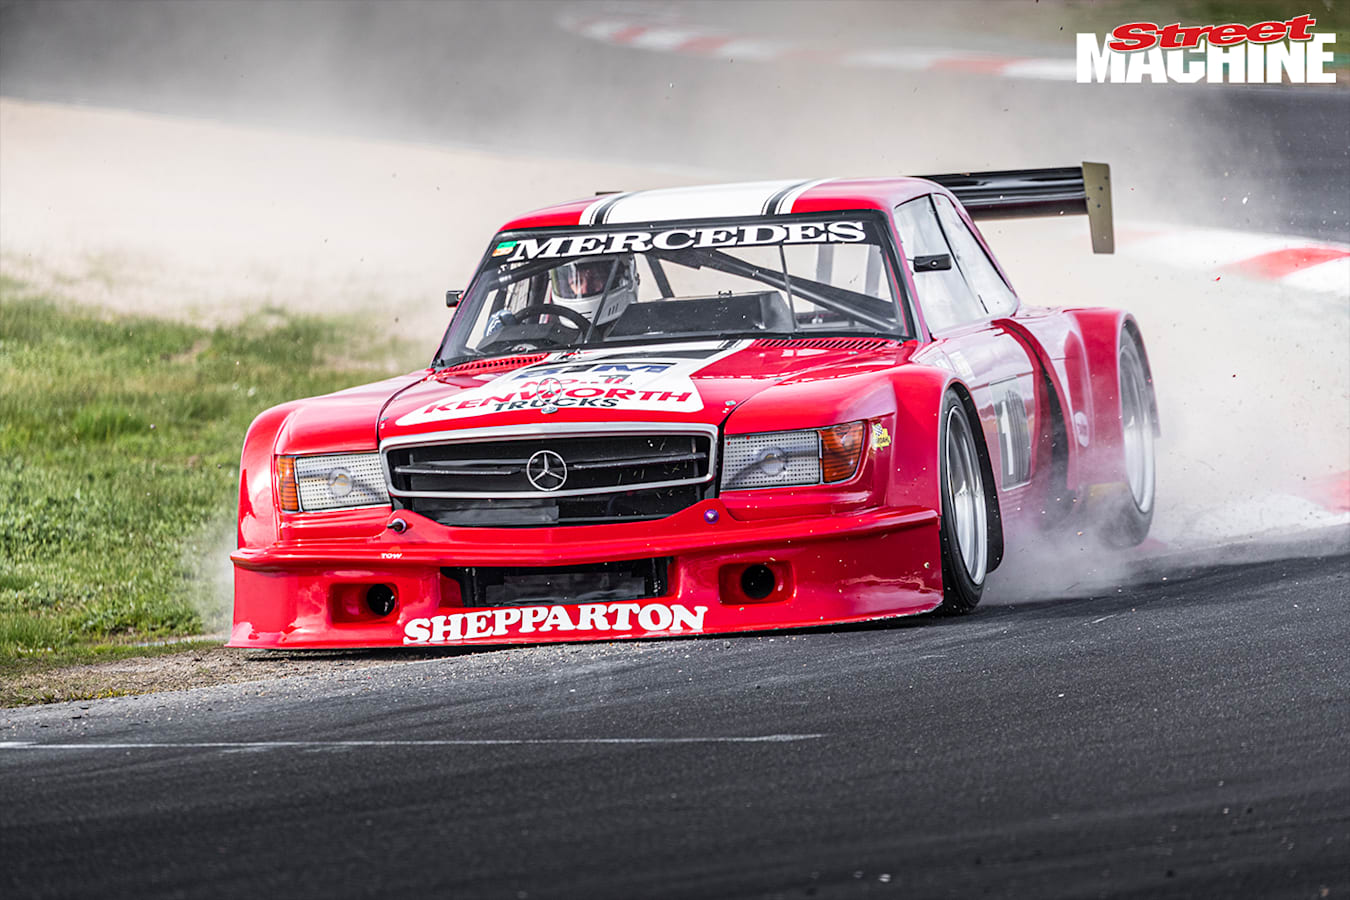 Winton Mercedes track day